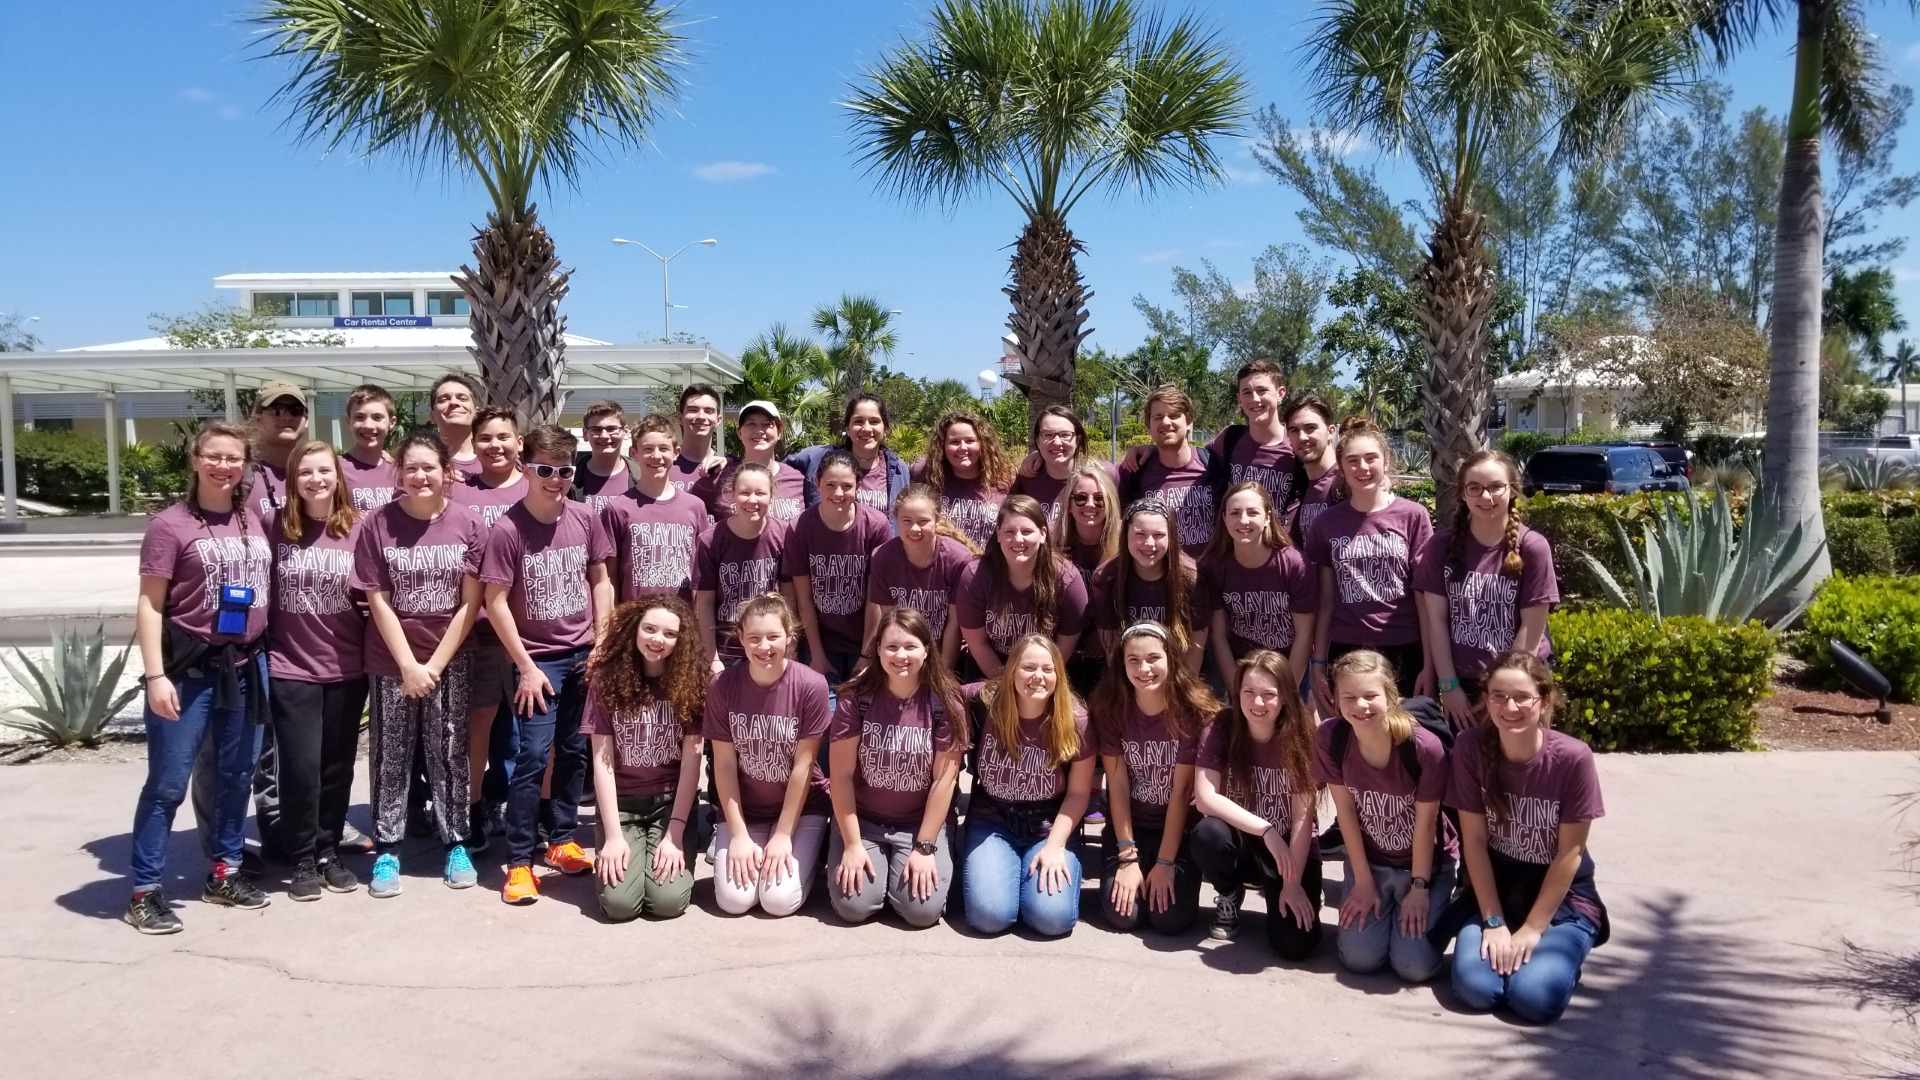 bahamas mission trip journals praying pelican missions